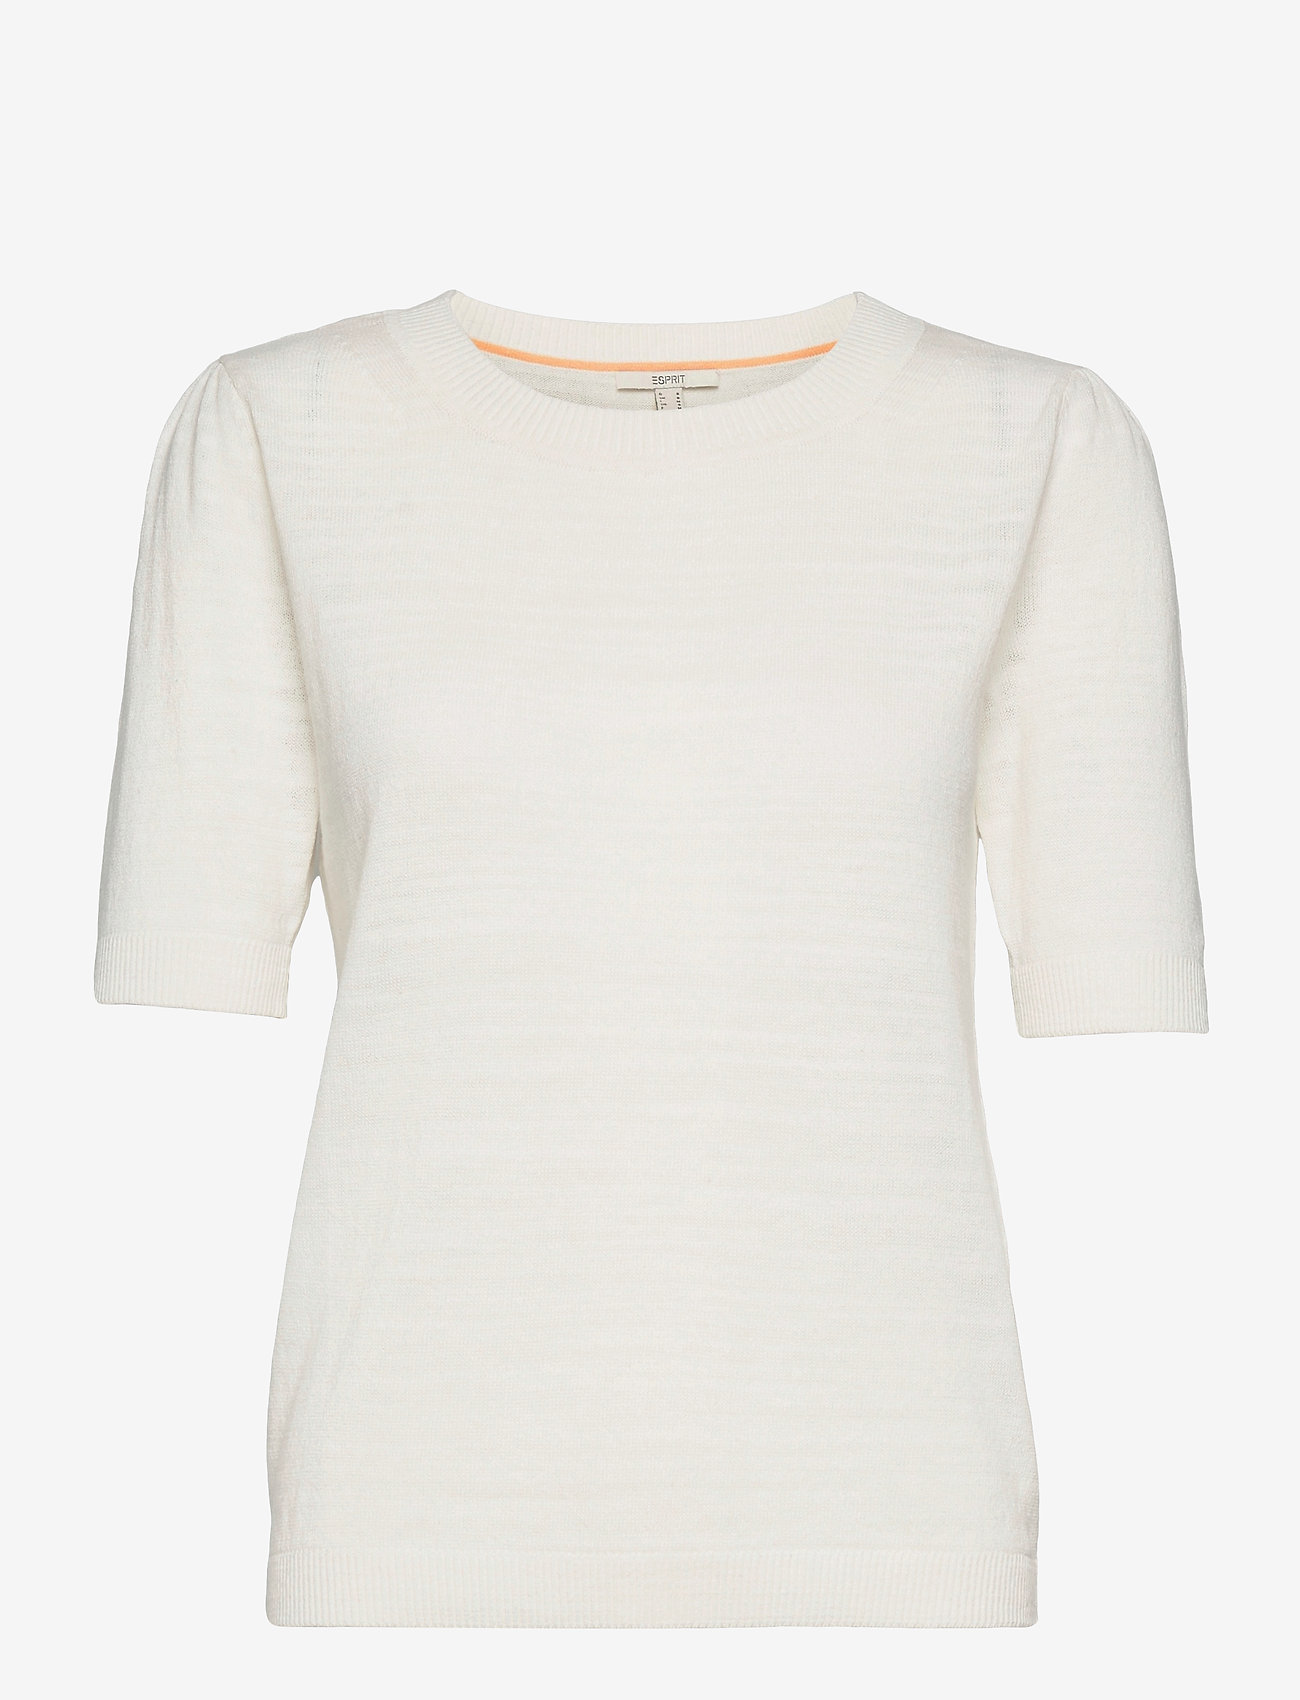 Esprit Casual - Sweaters - strikkede toppe - off white - 0